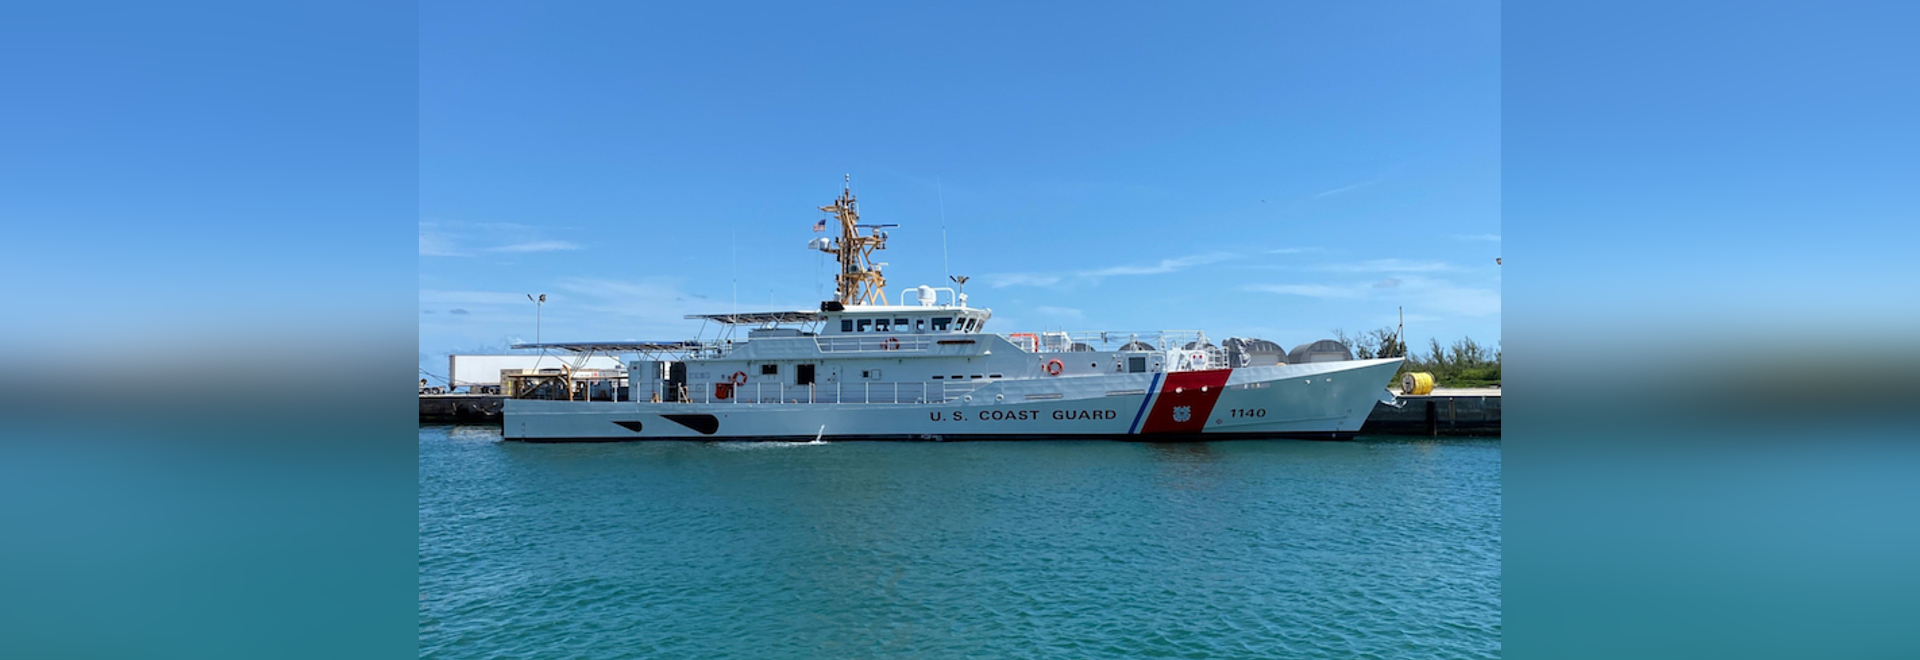 The Oliver Henry is the second of three FRCs to be homeported in Apra Harbor, Guam, increasing the presence for the U.S. Coast Guard in the Indo-Pacific Theater.